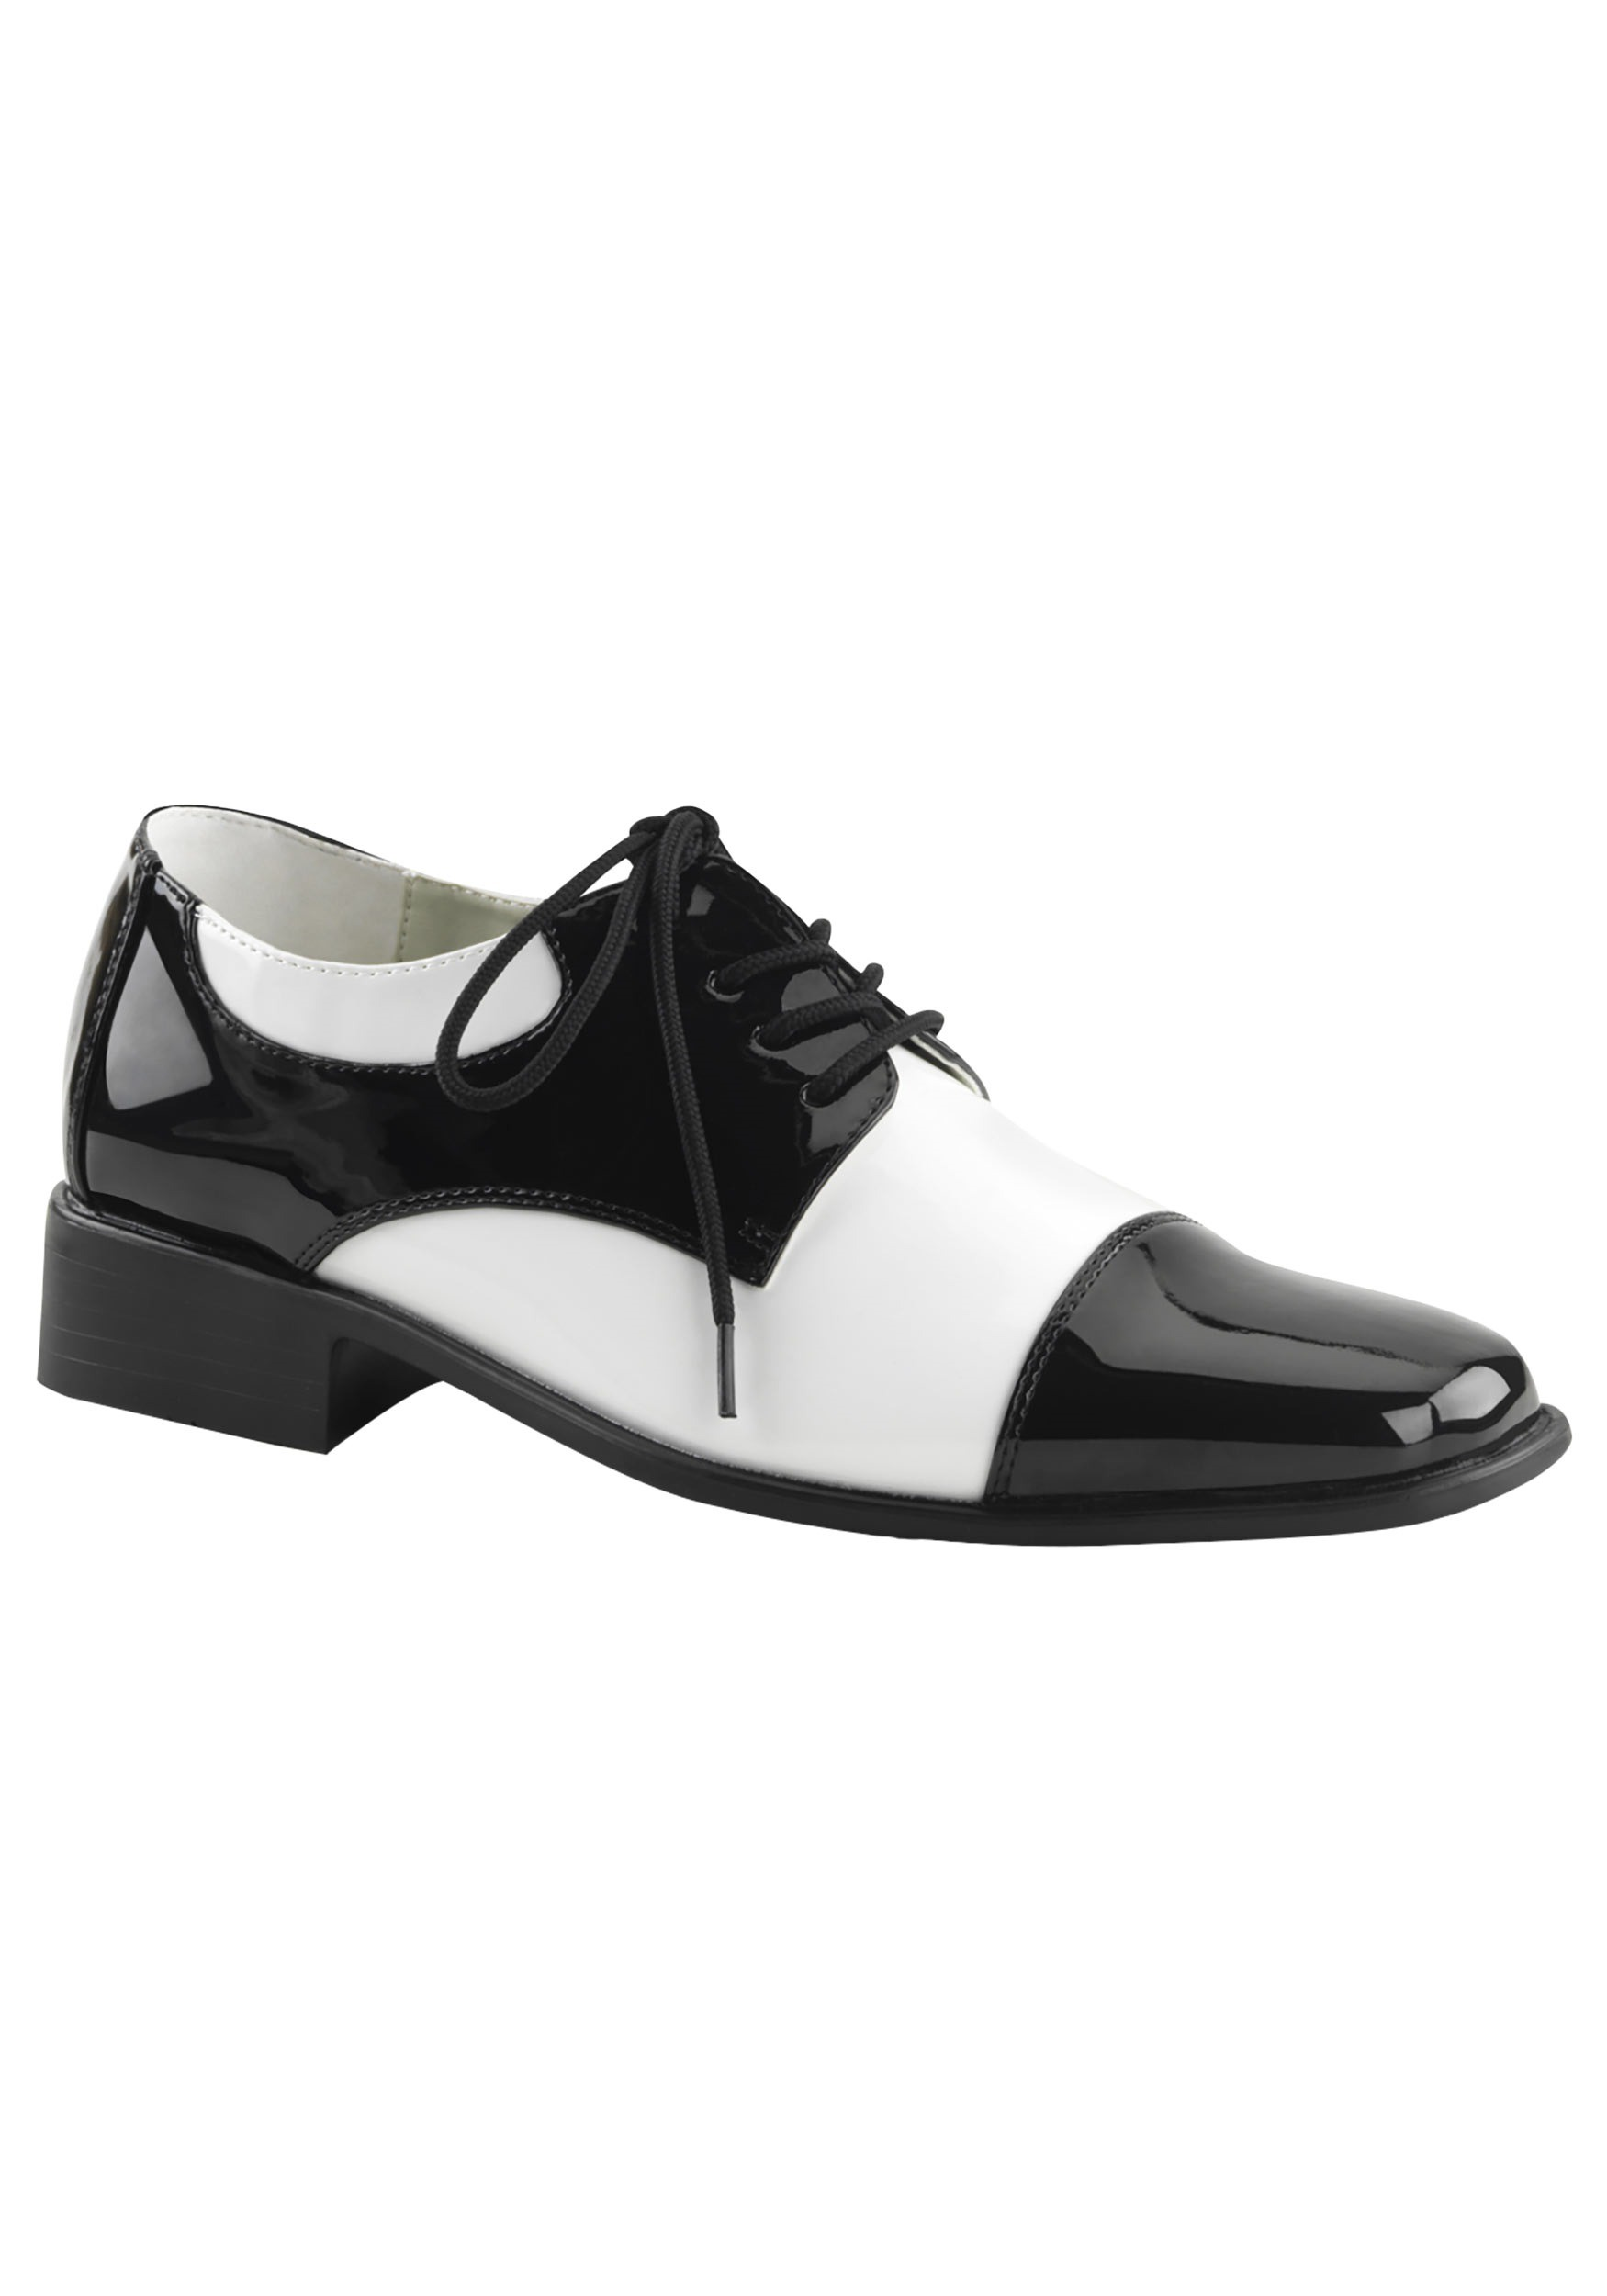 black white gangster shoe mens vintage inspired 1920s